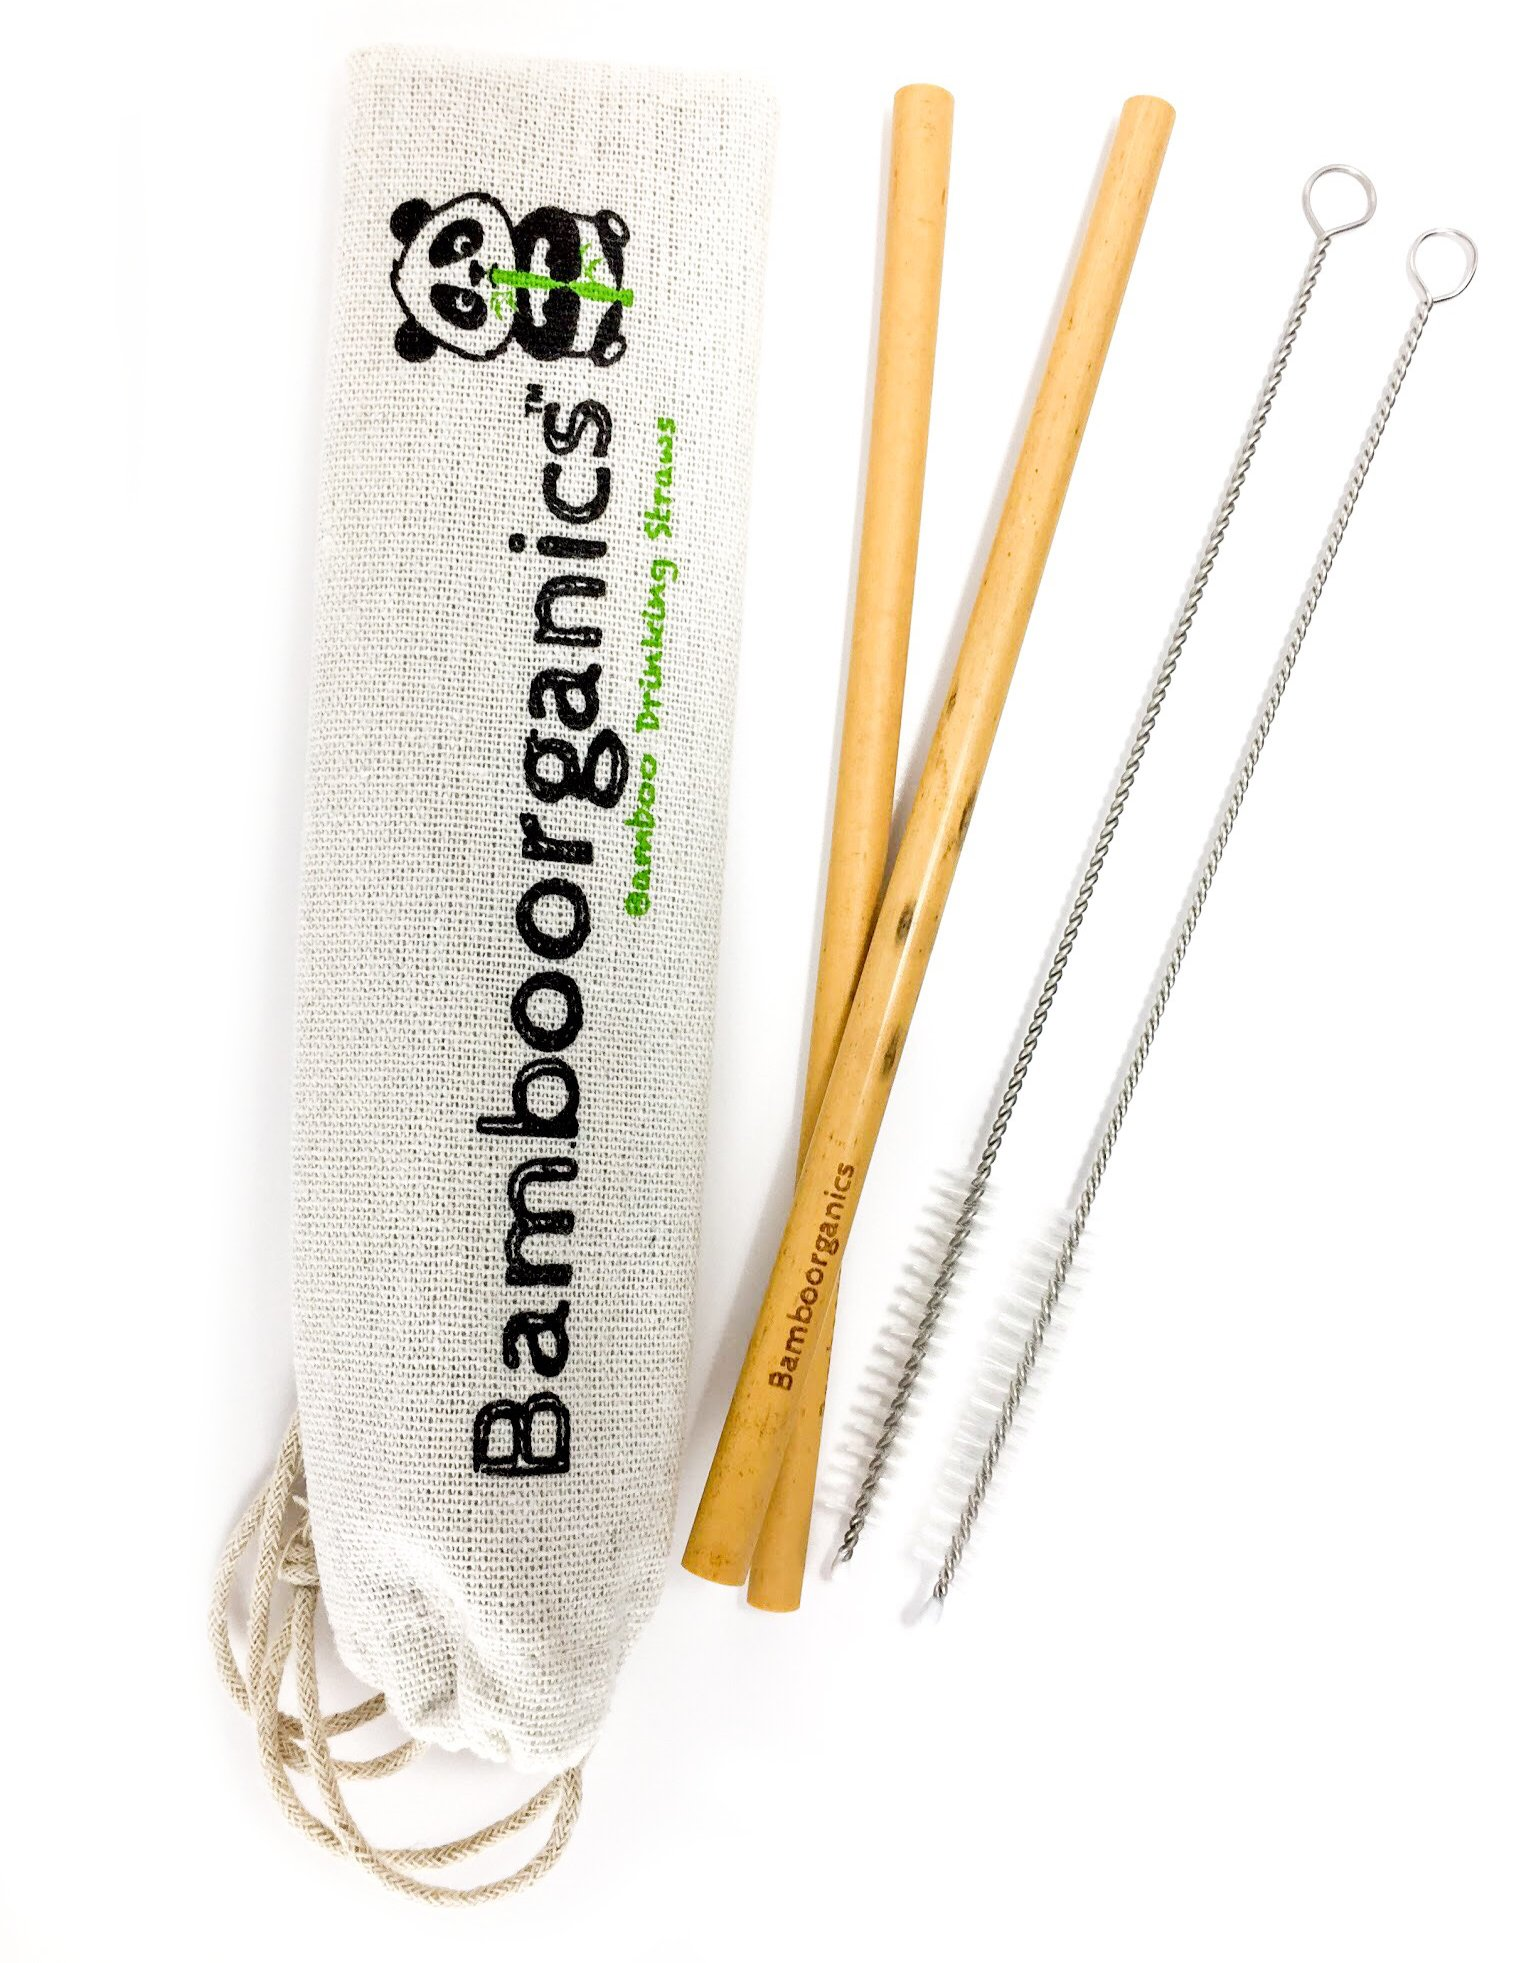 Zero Waste, Reusable, Premium Bamboo Drinking Straws & Natural Cotton Travel Bag | Large Mouth Straw Set of 10 with 2 Cleaning Brushes | Eco-Friendly, Biodegradable | 8in Long by Bamboorganics (Image #4)